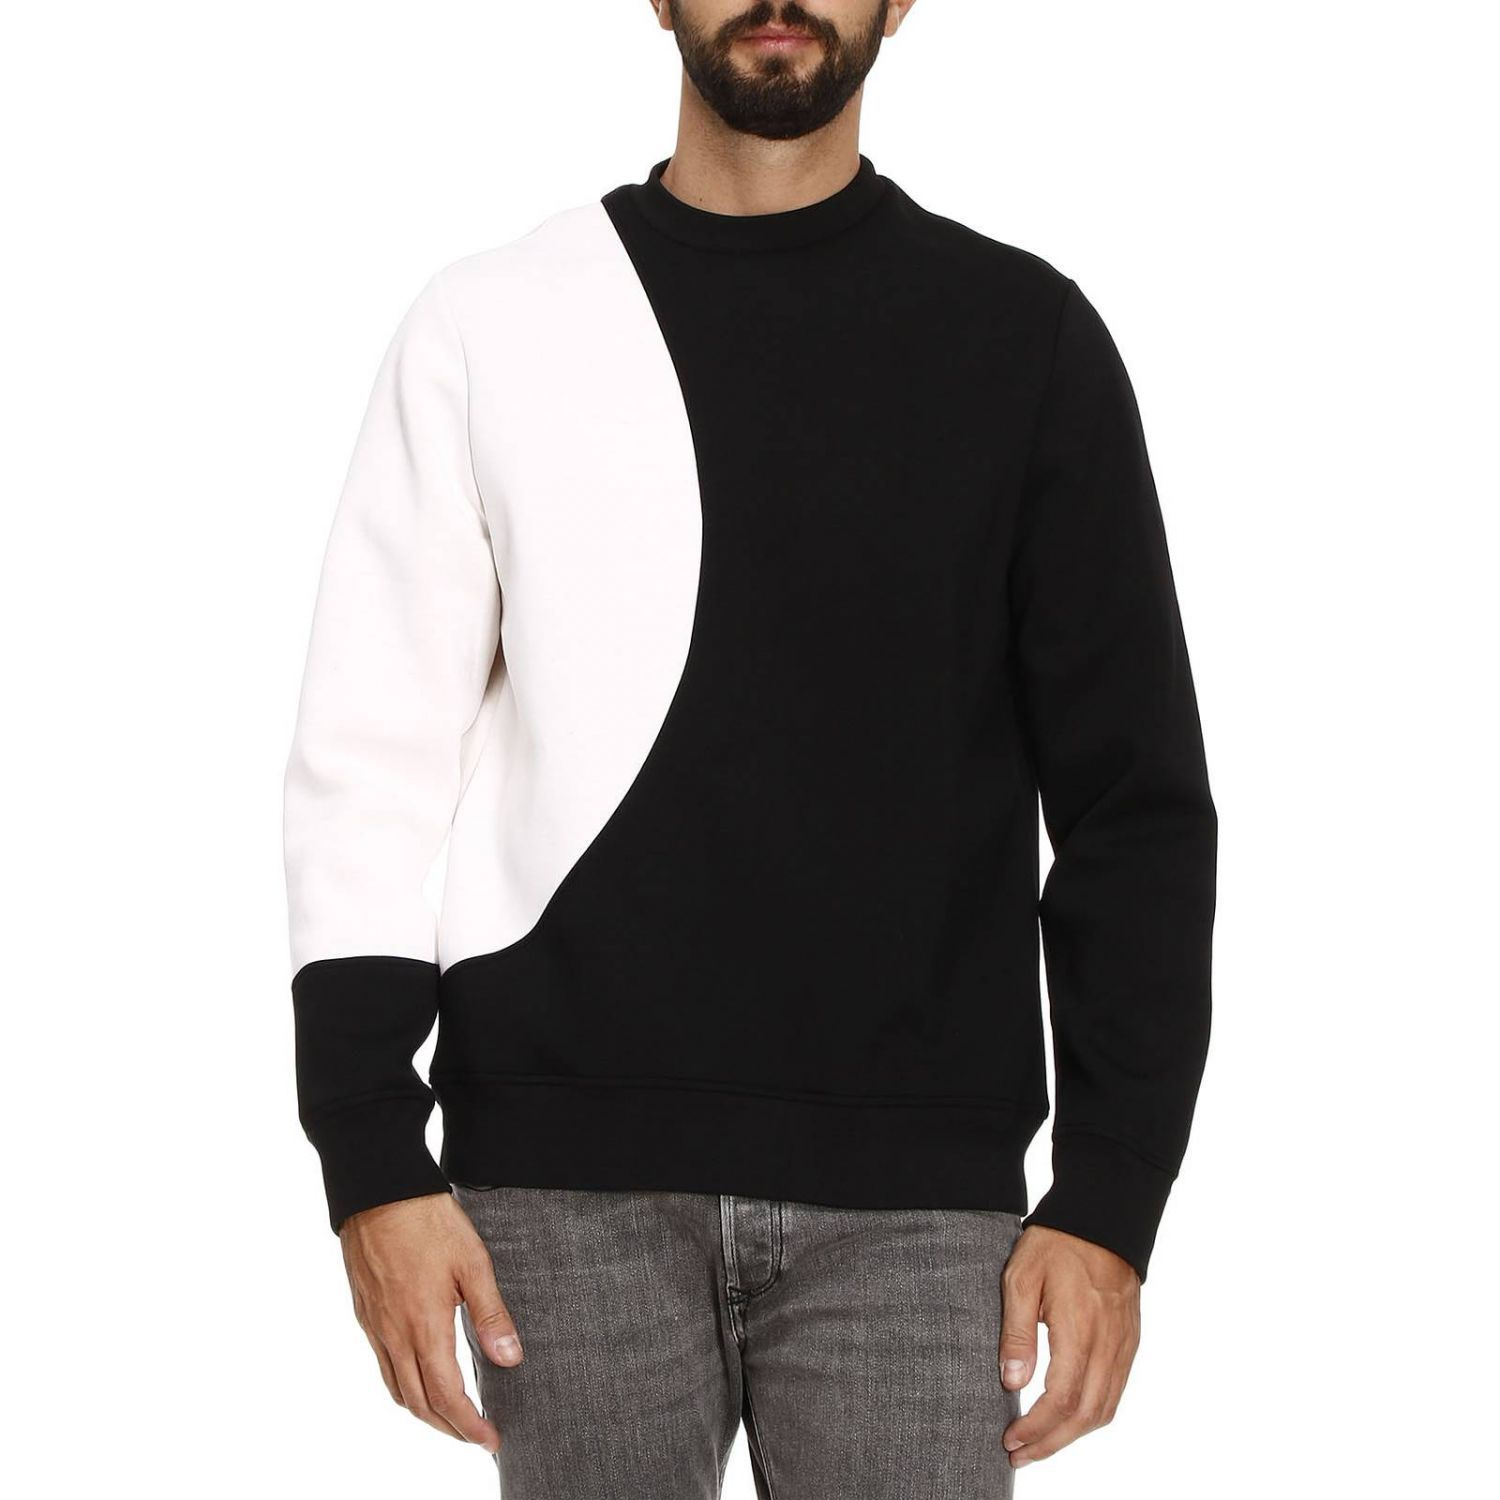 Sweatshirt Sweater Men Diesel Black Gold